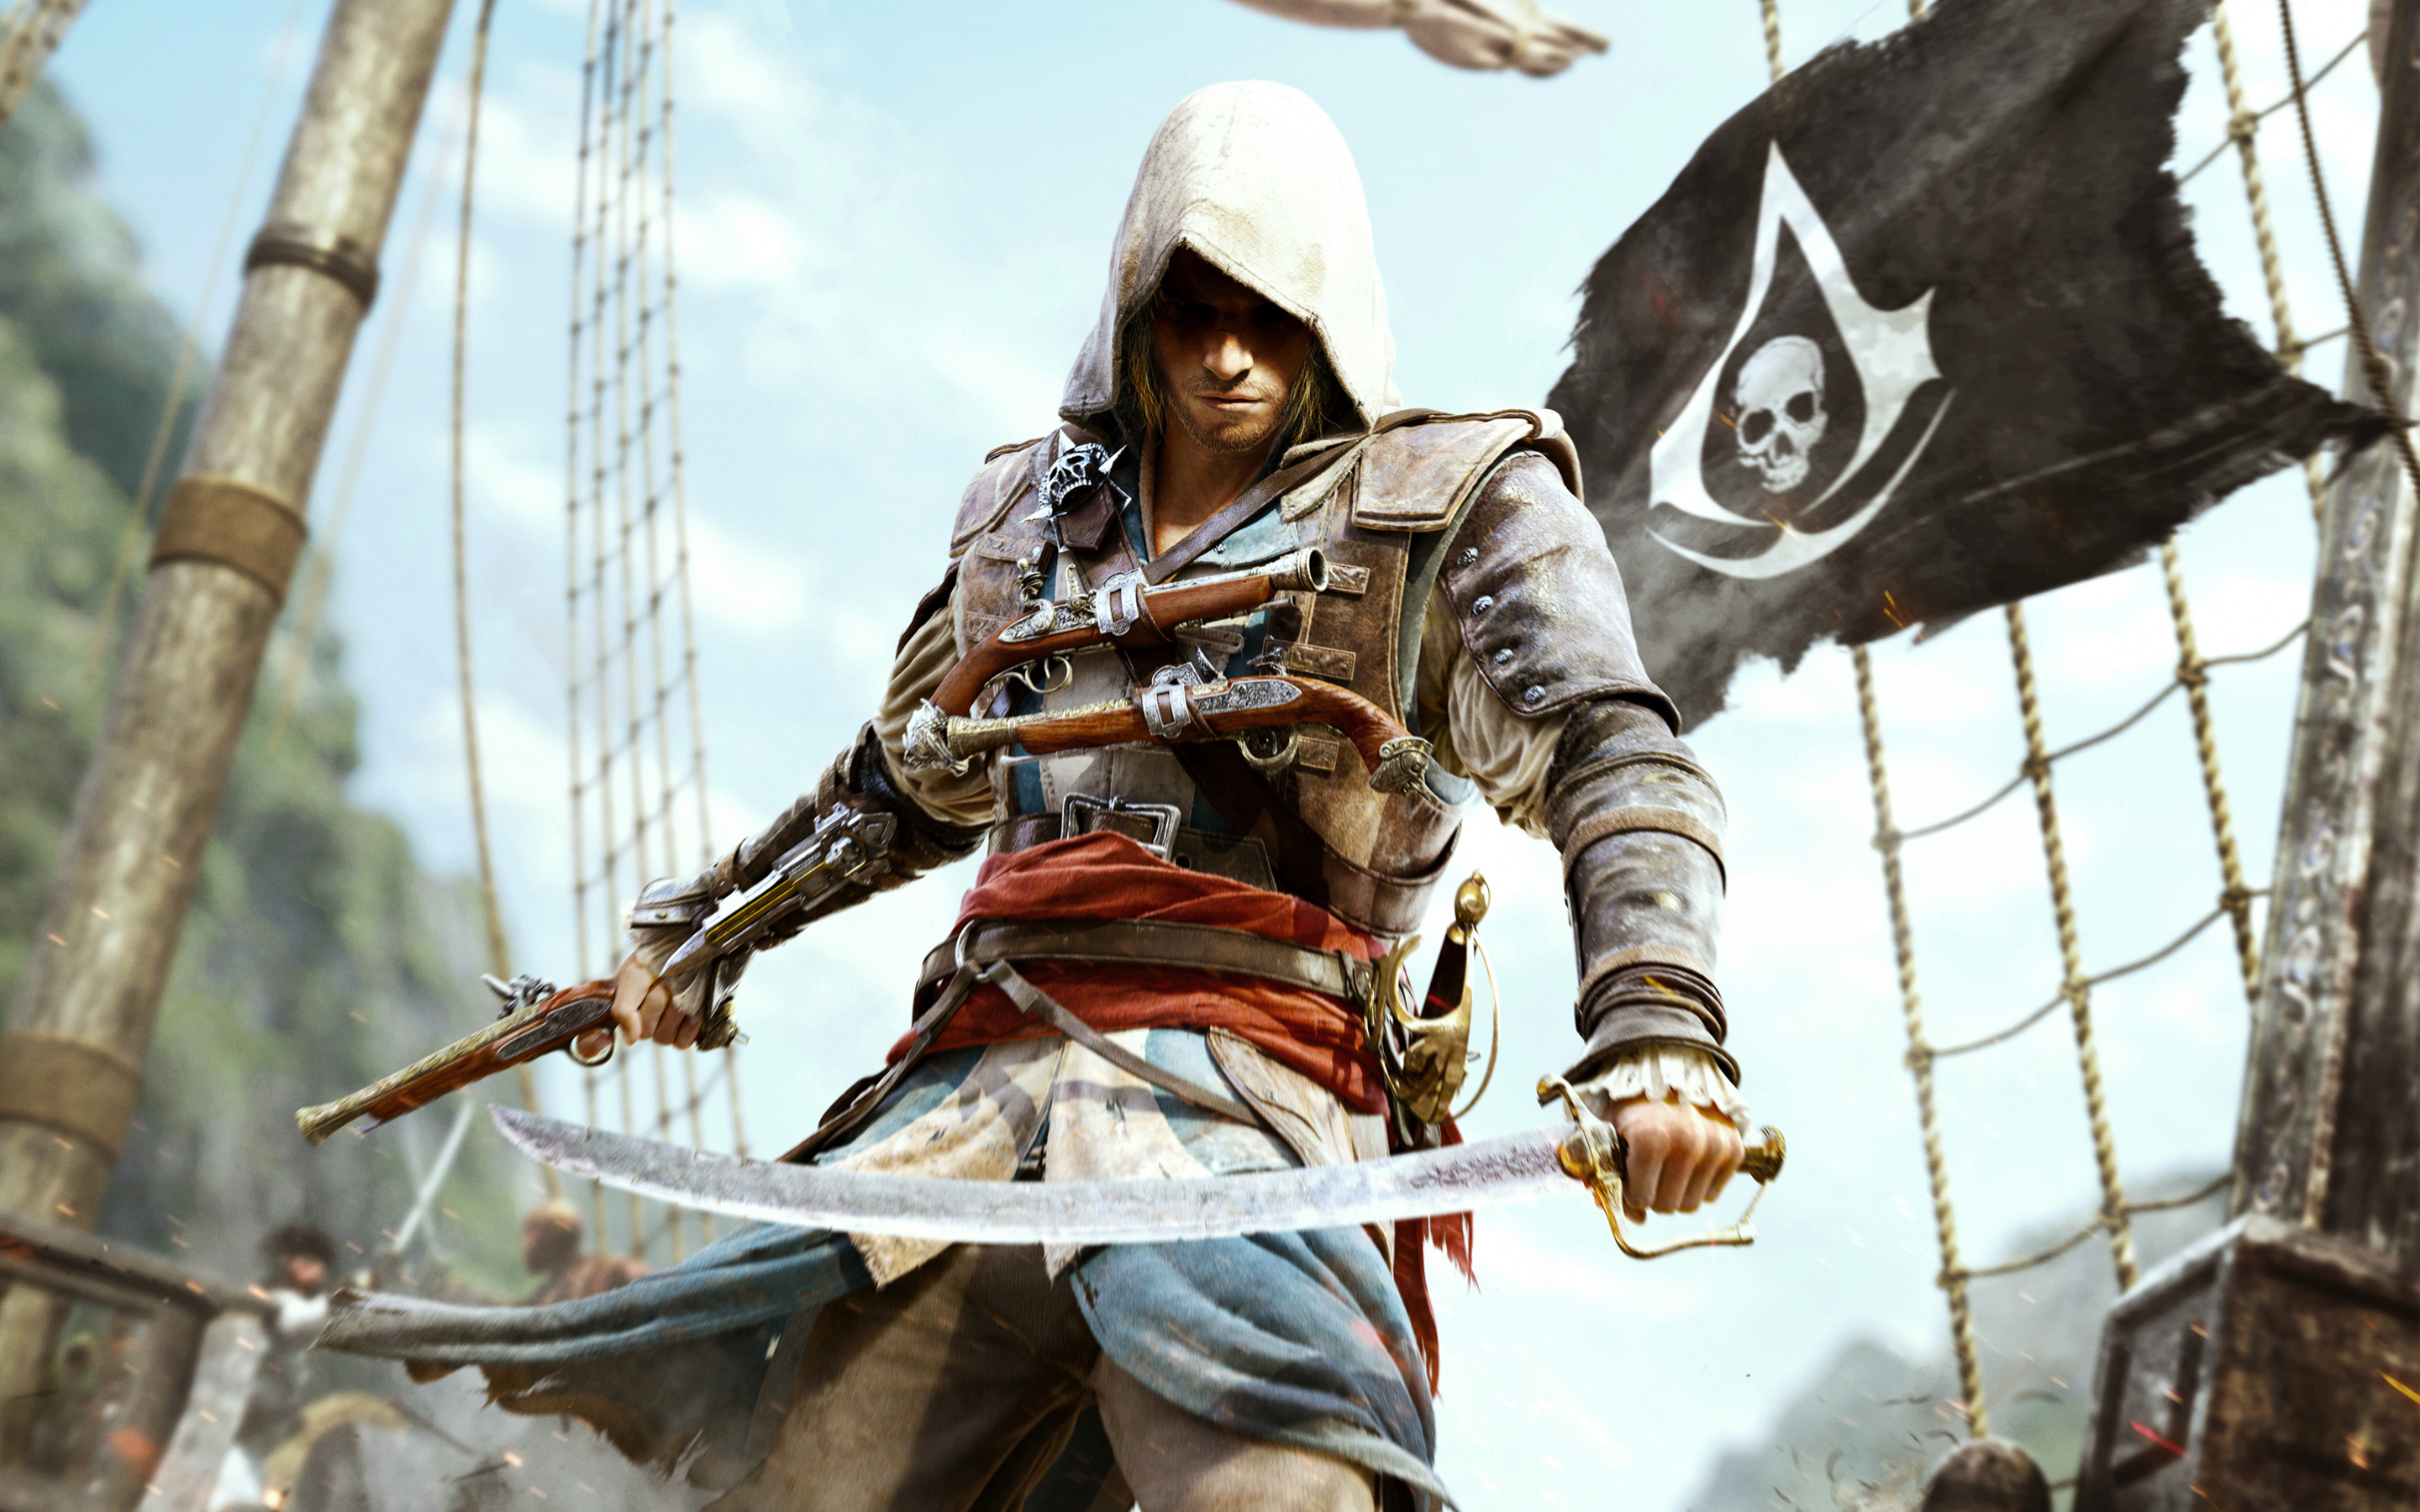 How to Lower Your Wanted Level in Assassin's Creed 4